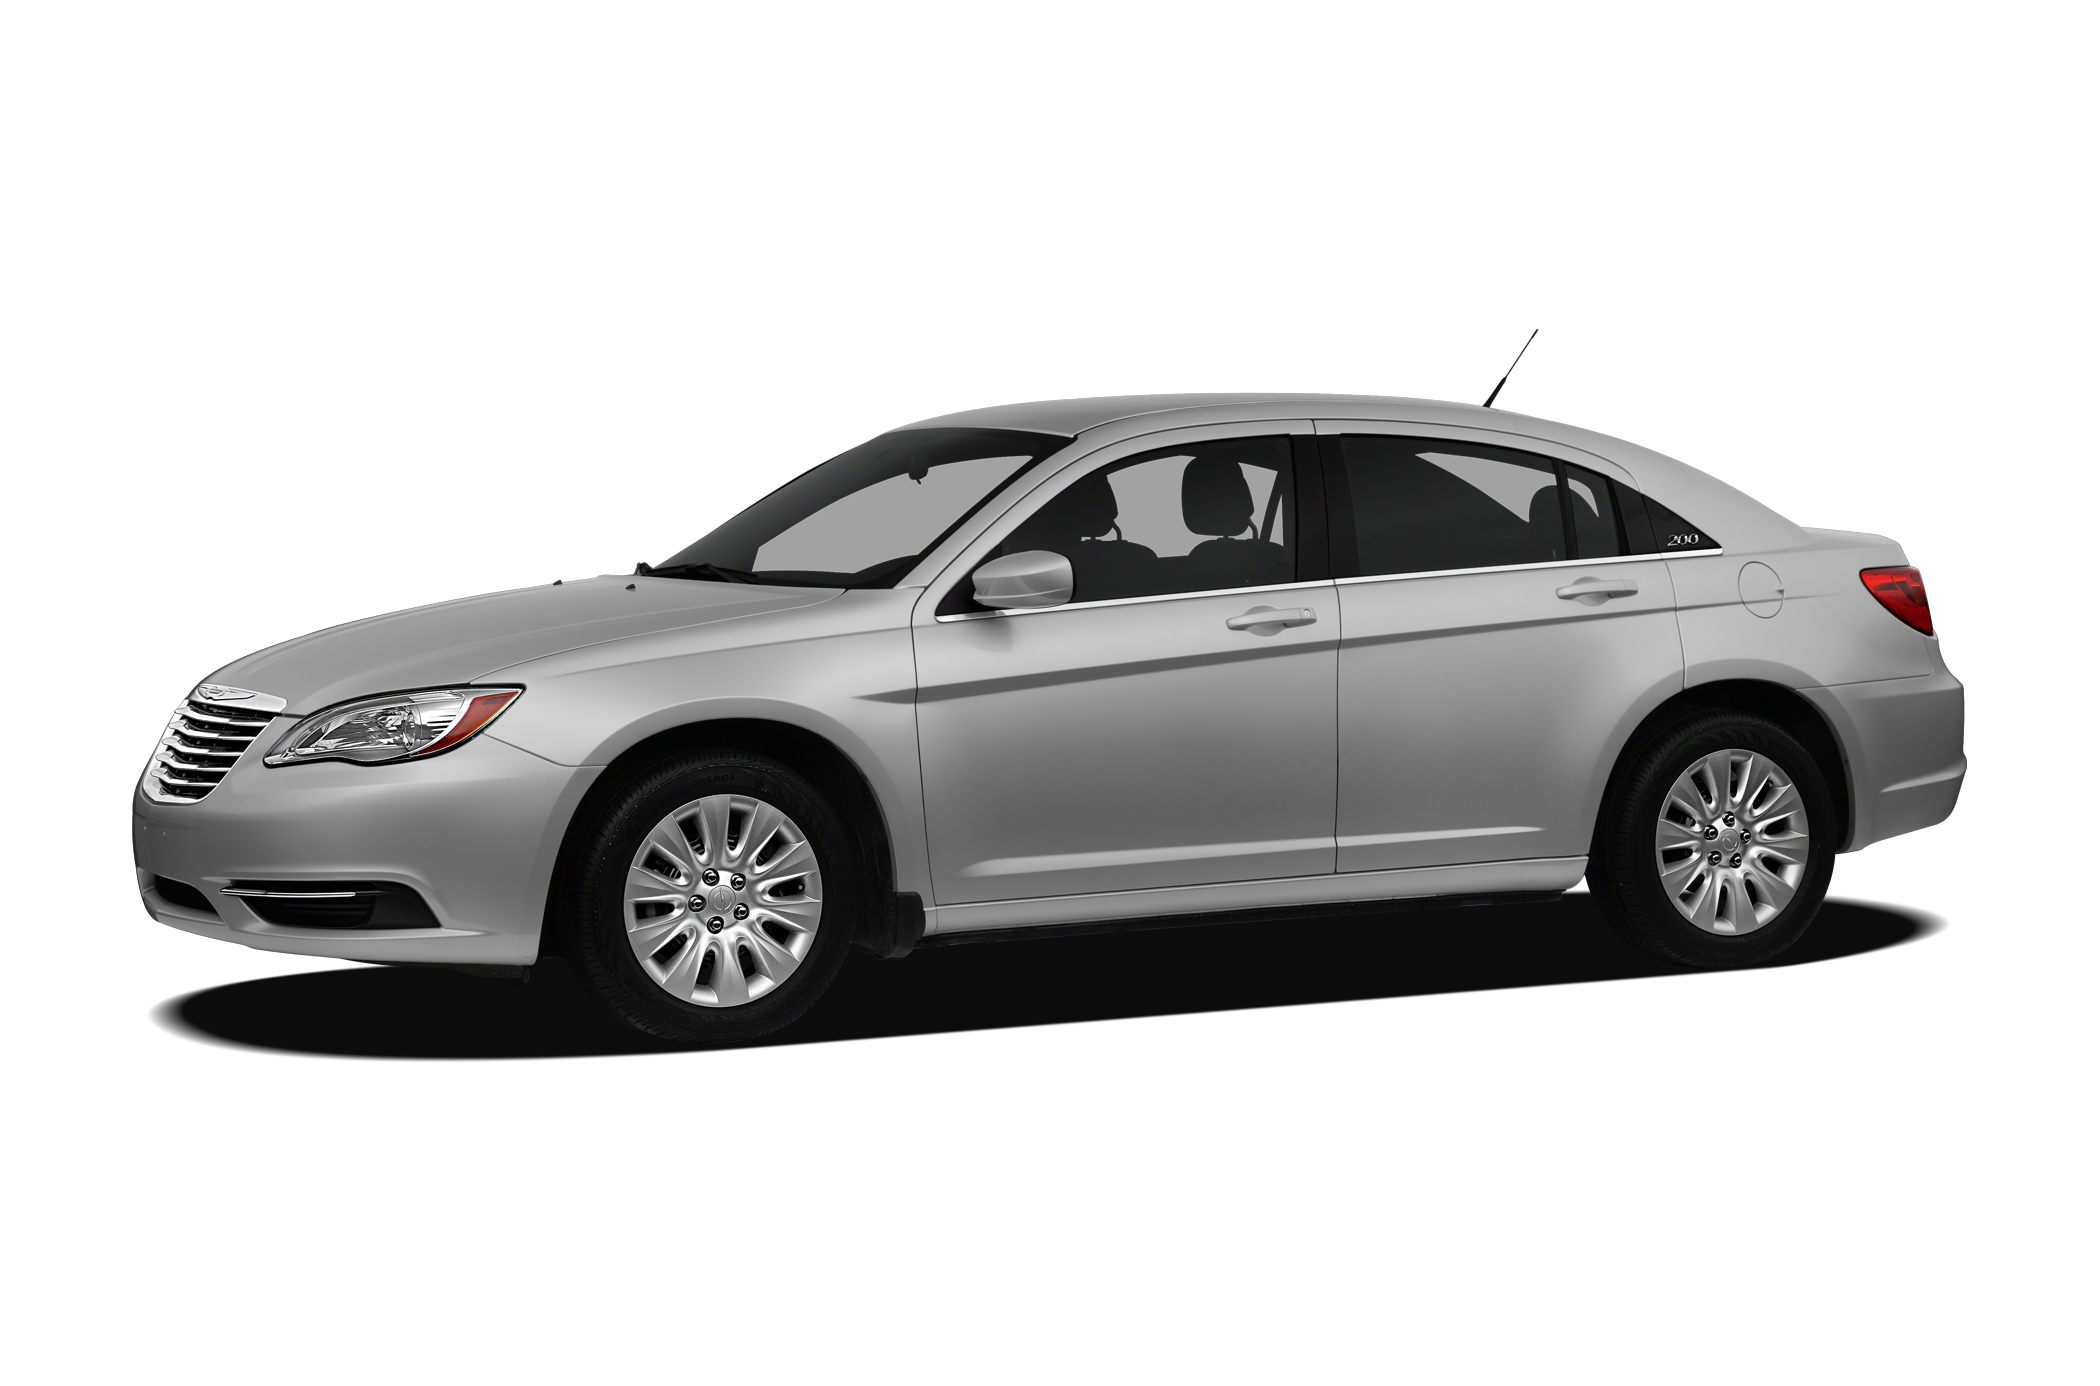 2012 Chrysler 200 LX Sedan for sale in Morrow for $9,995 with 61,518 miles.